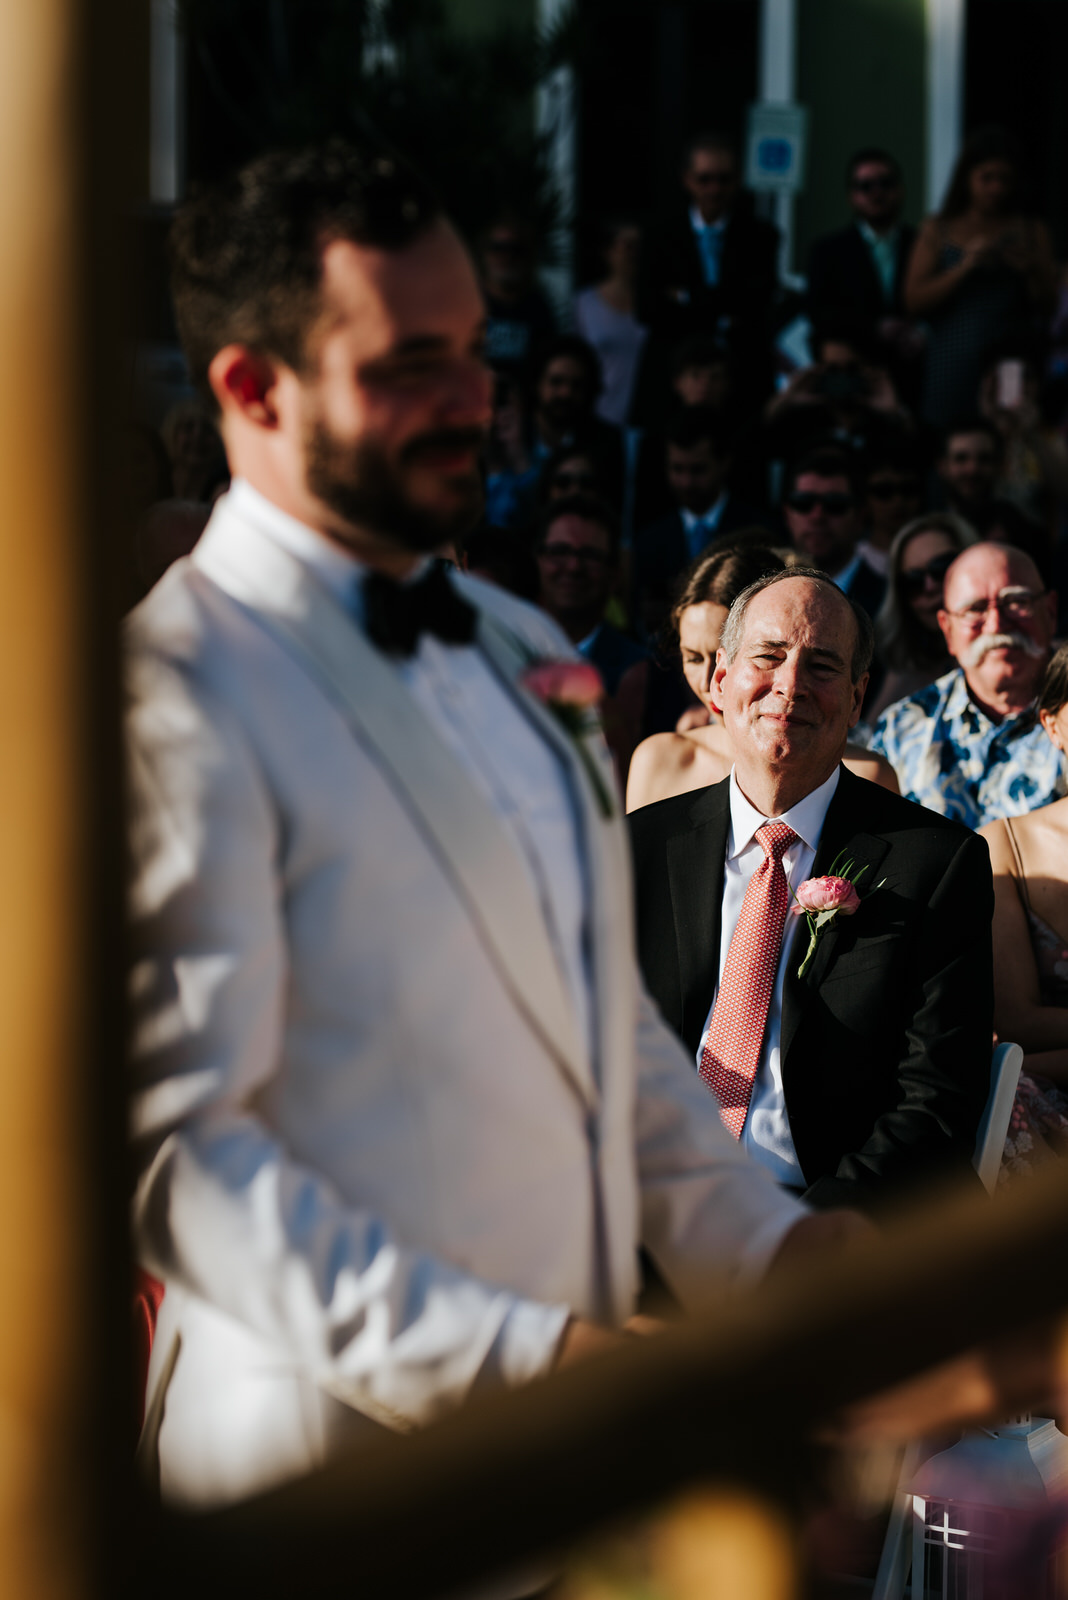 Groom stands, out of focus, at the front of the aisle as his father smiles towards him from the background